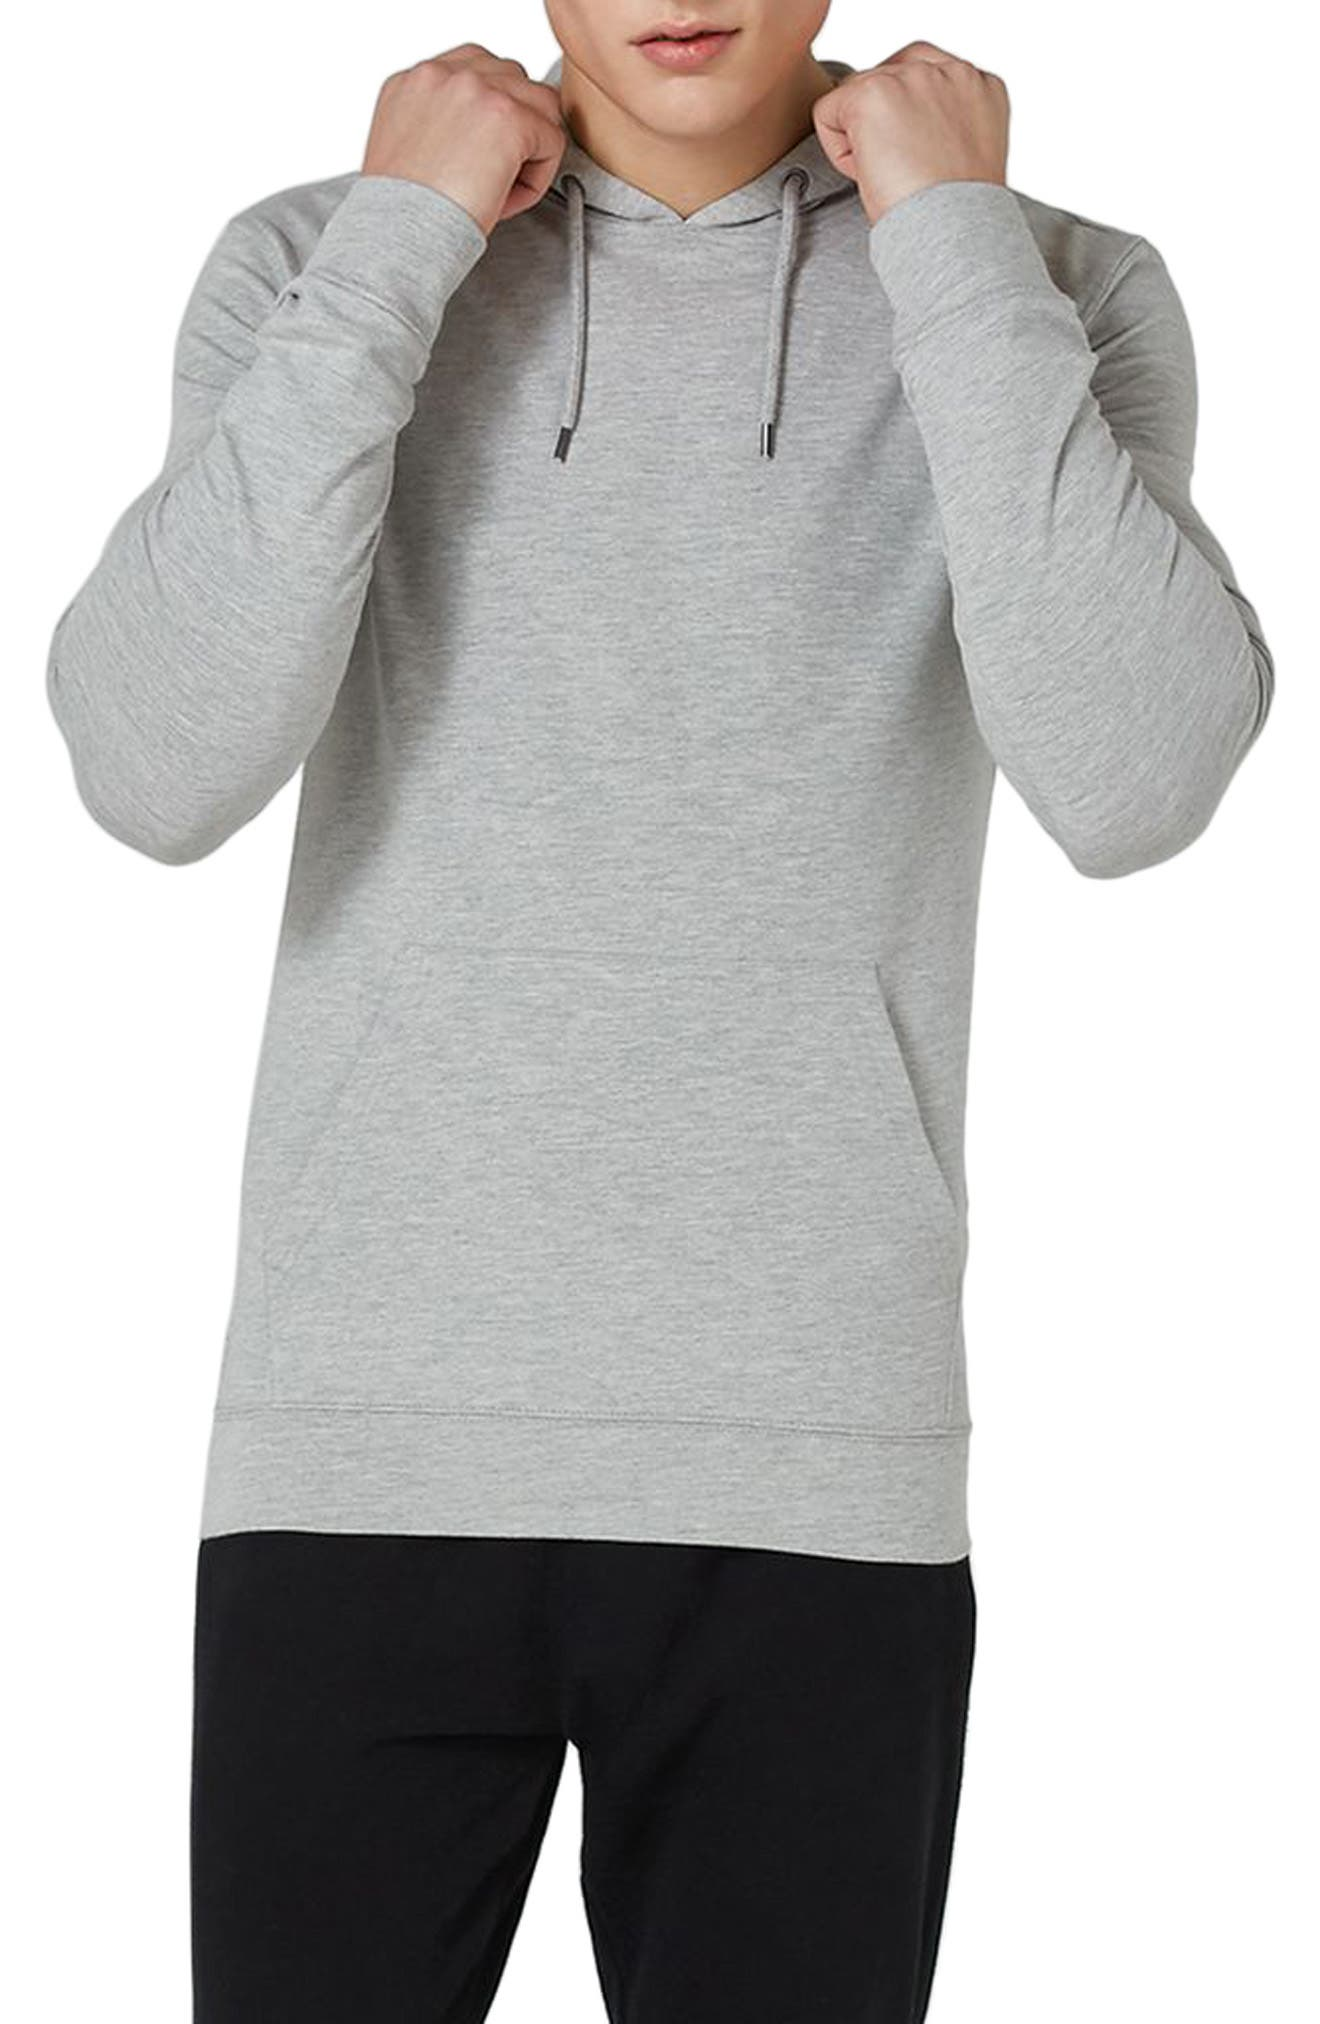 Ultra Muscle Fit Hoodie,                             Main thumbnail 2, color,